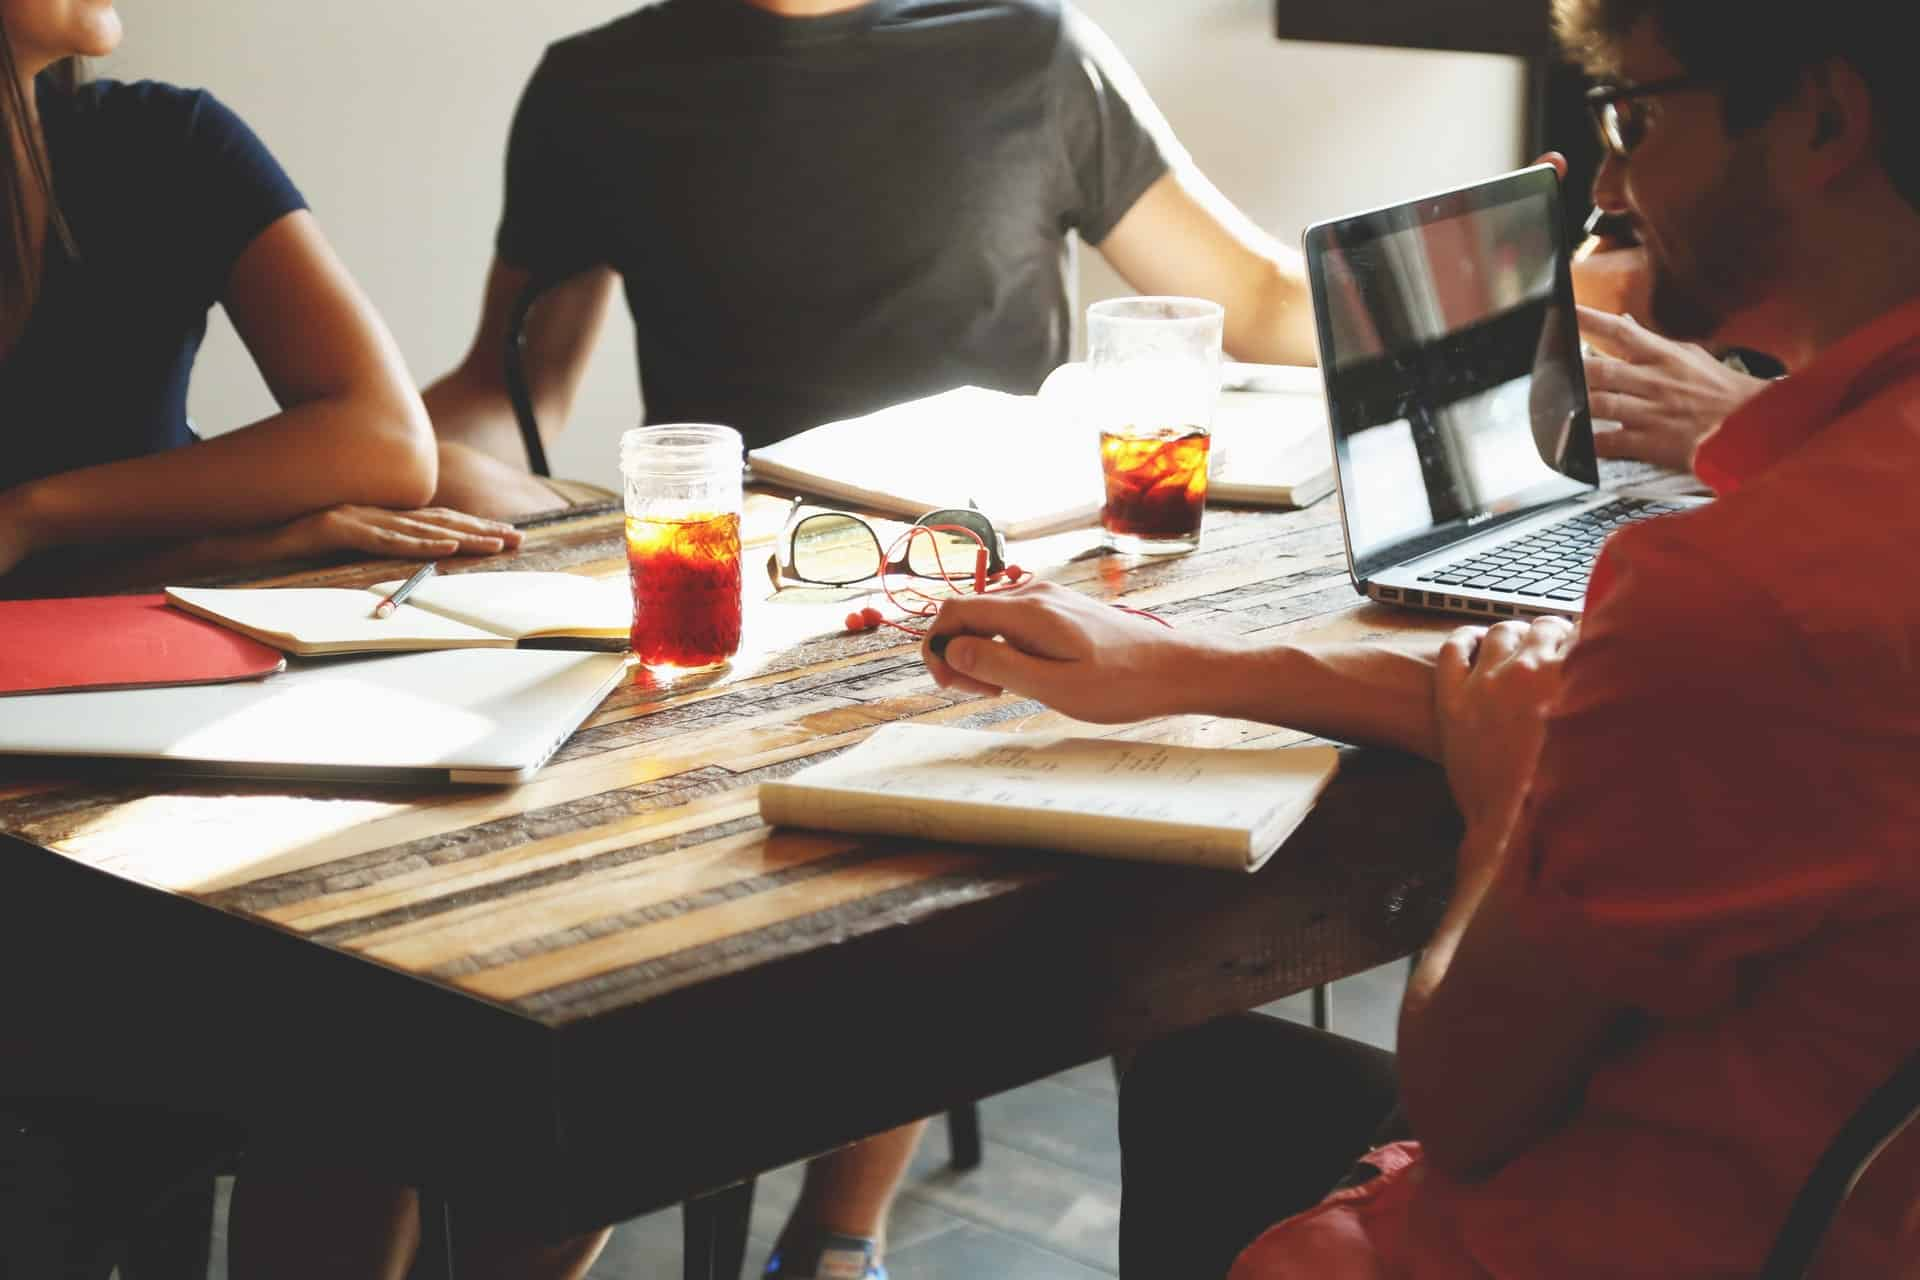 5 Mistakes to Avoid When Writing Your First Startup Business Plan